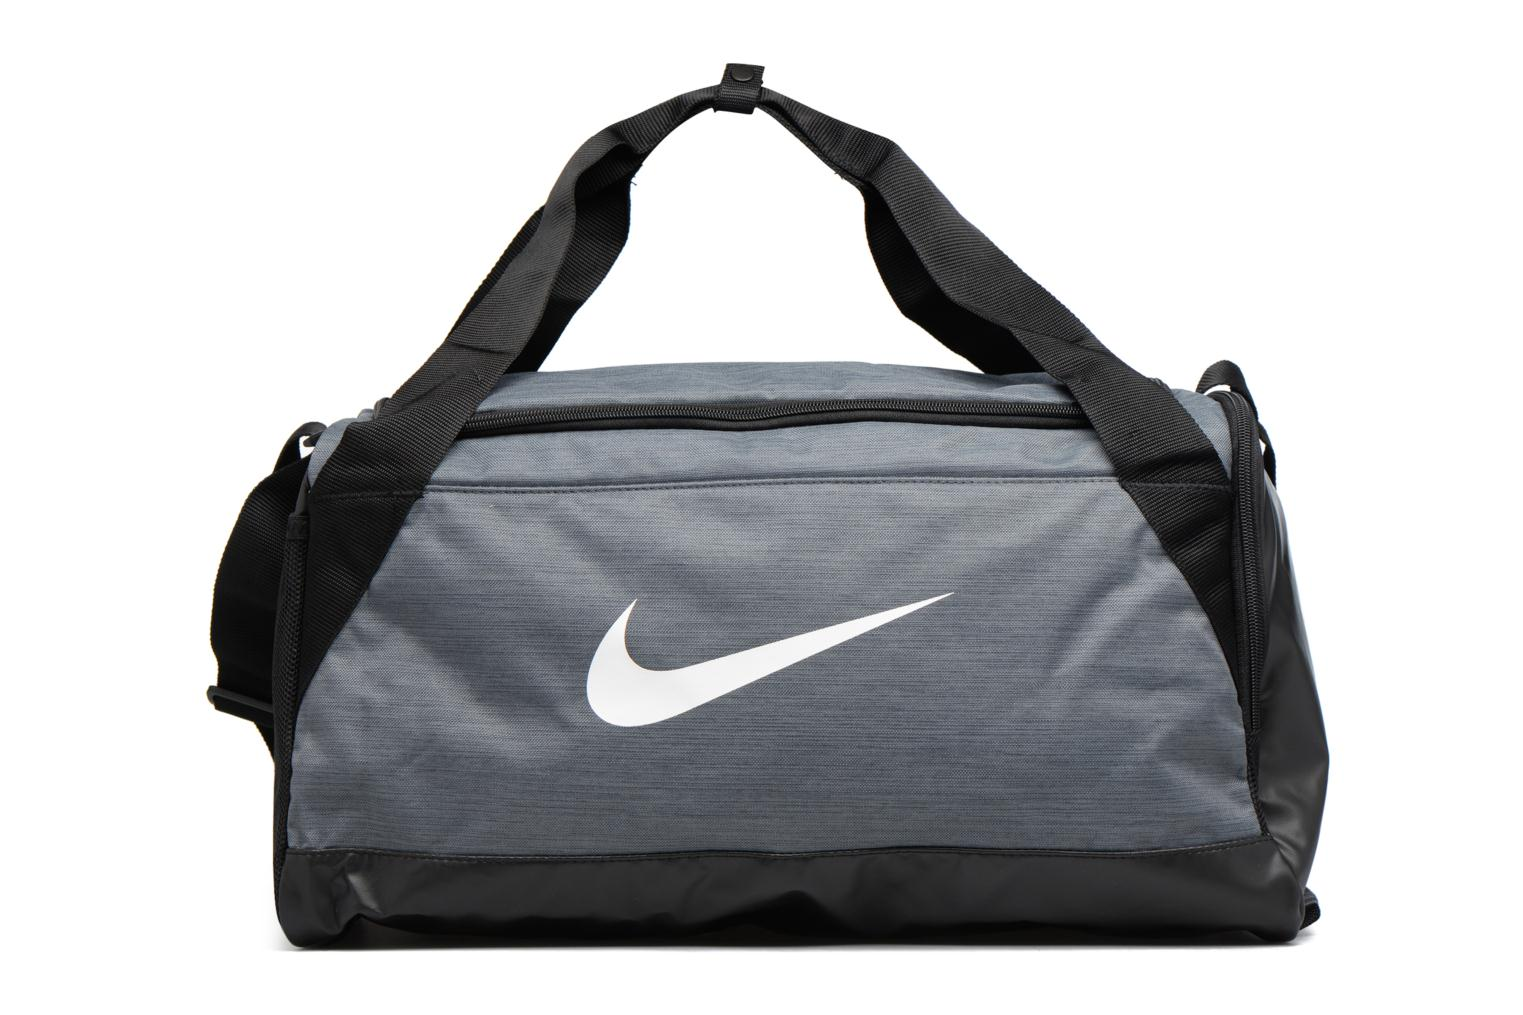 Nike Brasilia Duffle bag S Flint grey/Black/White